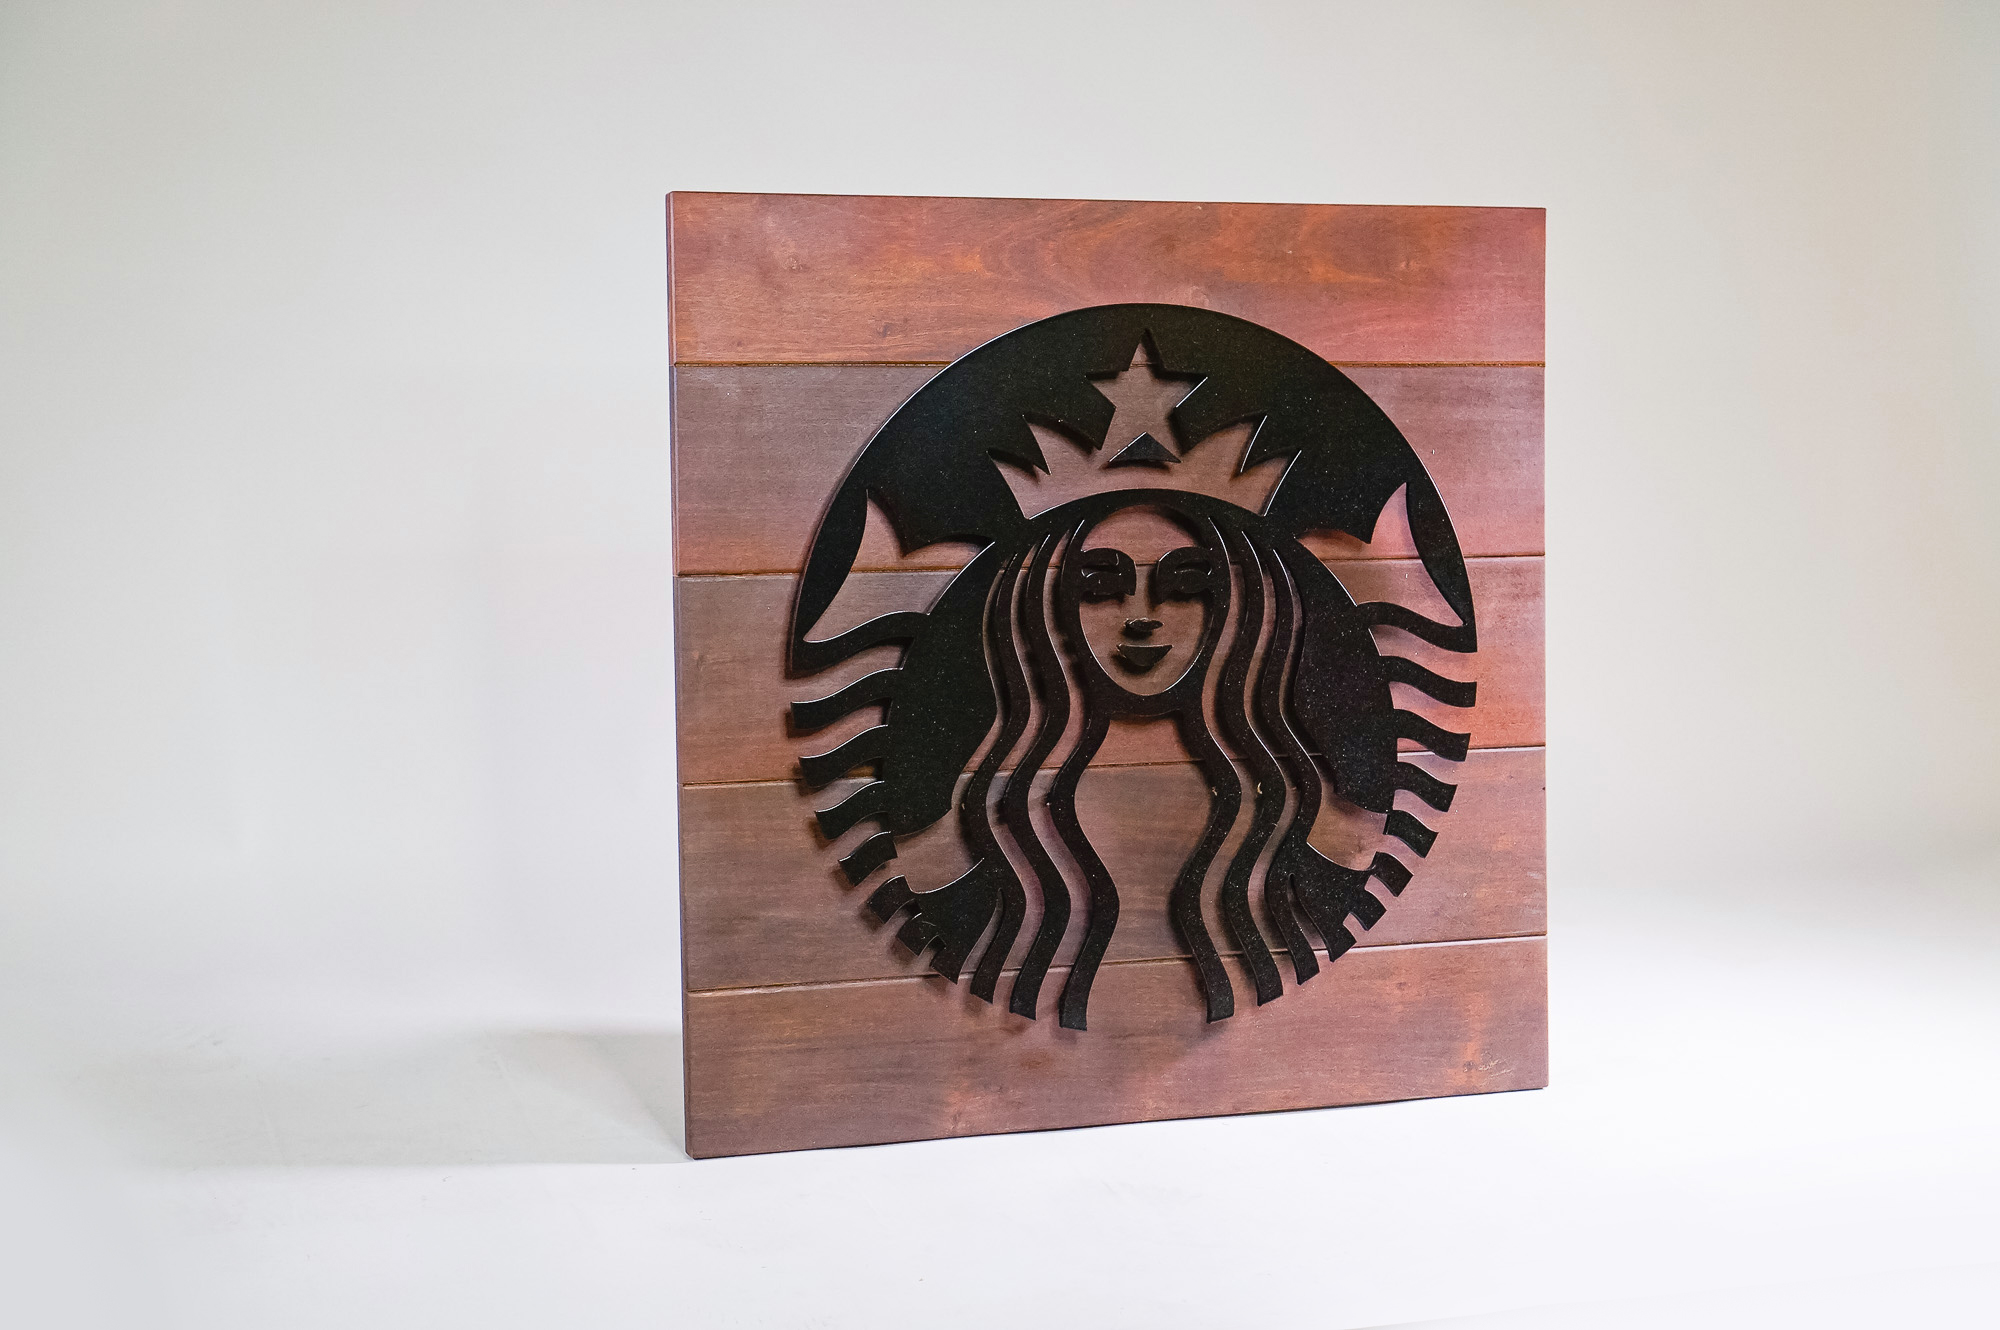 Starbucks outdoor cafe blade sign at Zephyr Walk - Wood Slat Epay with black metal artwork